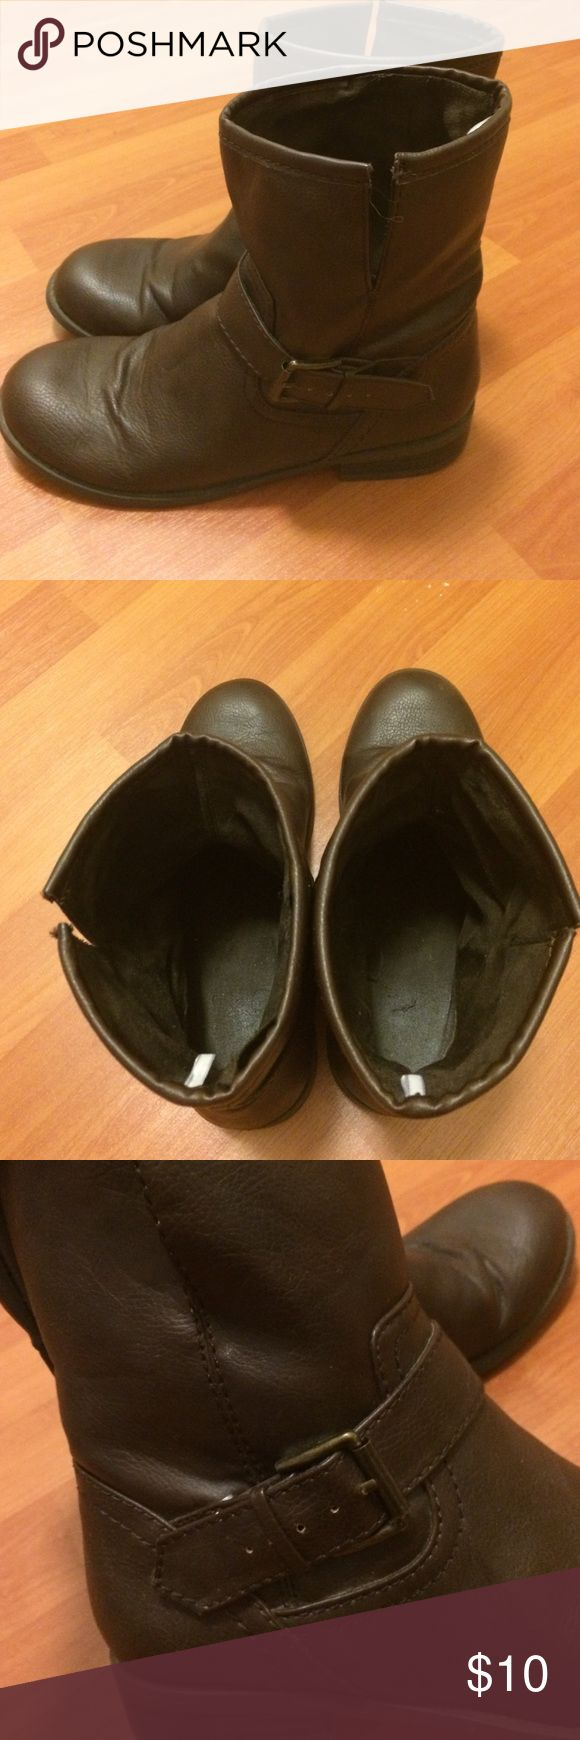 Old Navy ankle boots Slip on ankle boots! Dark brown great for fall or with skinny jeans! In good used condition Old Navy Shoes Ankle Boots & Booties